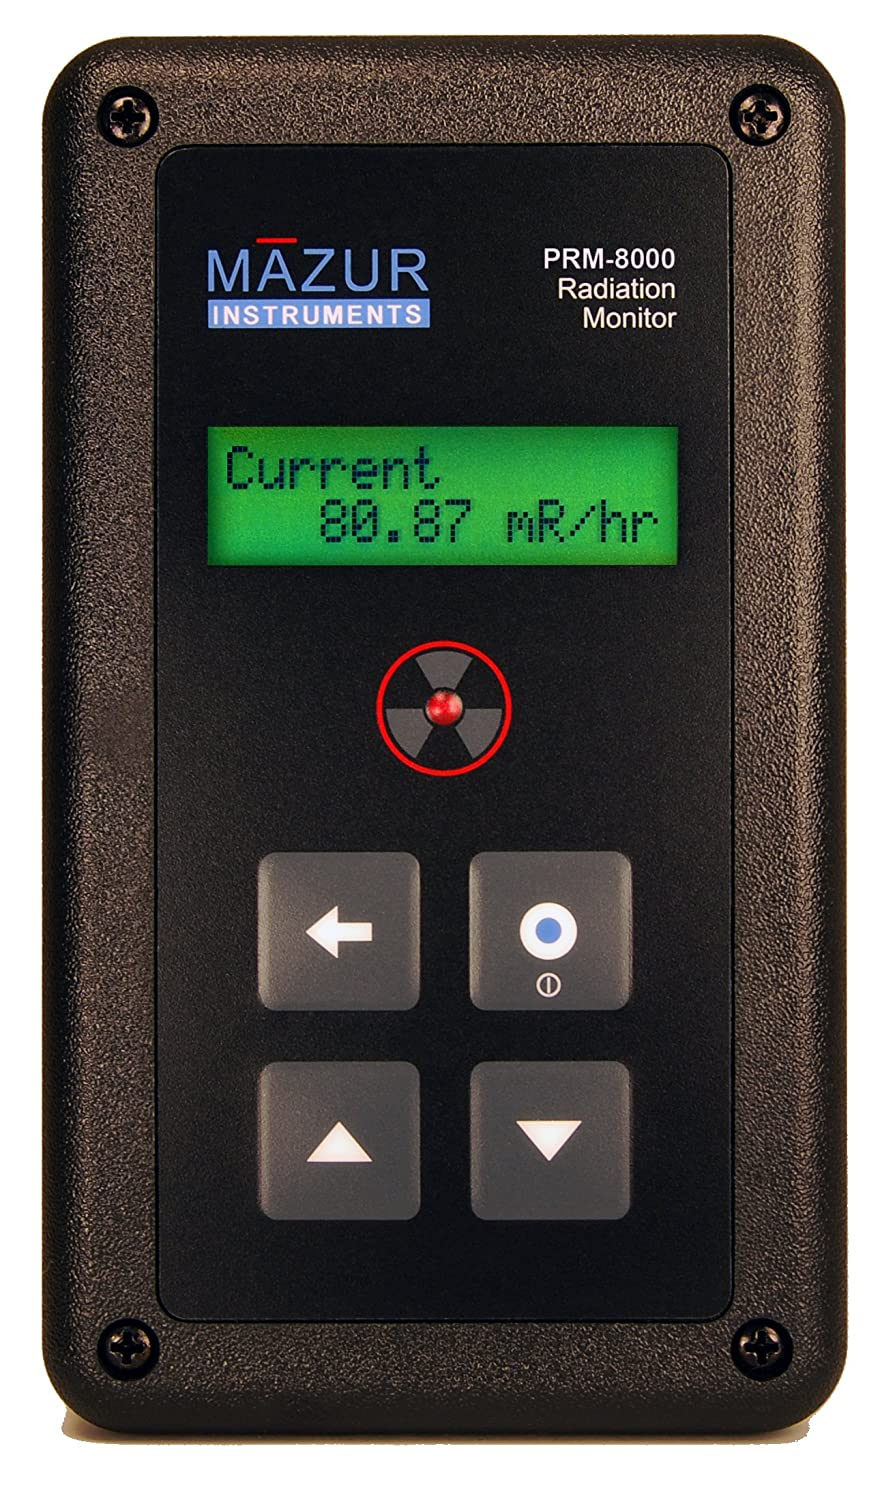 Mazur Instruments PRM-8000 mart Handheld Geiger Nuclear R Deluxe and Counter